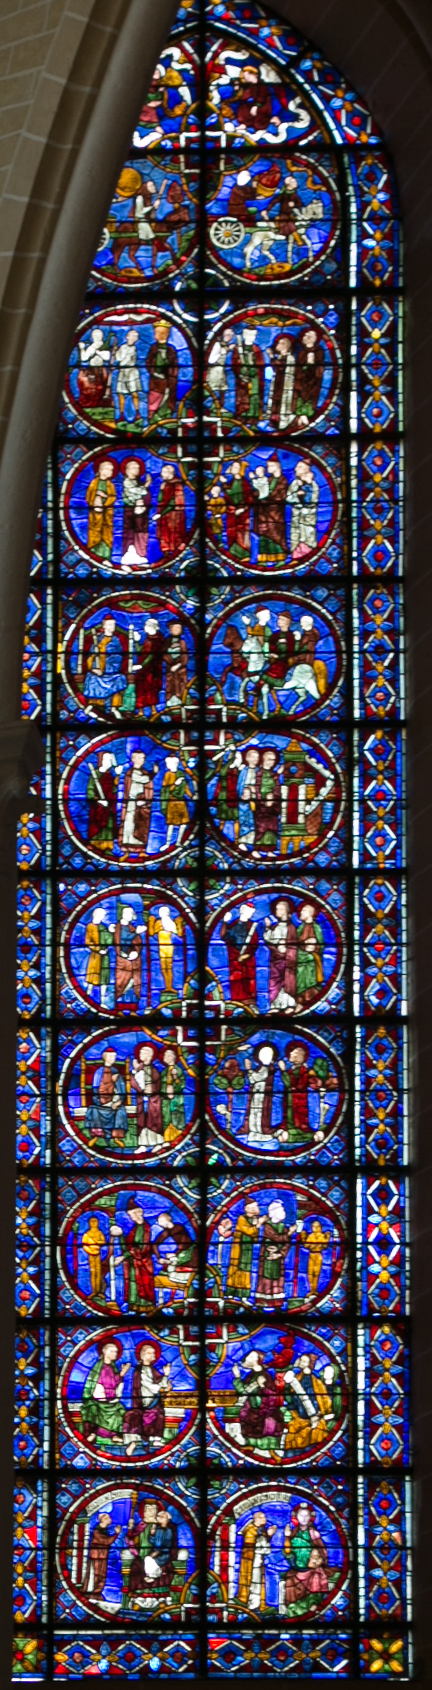 Chartres Cathedral, The  Lives of Saint Simeon and Saint Jude